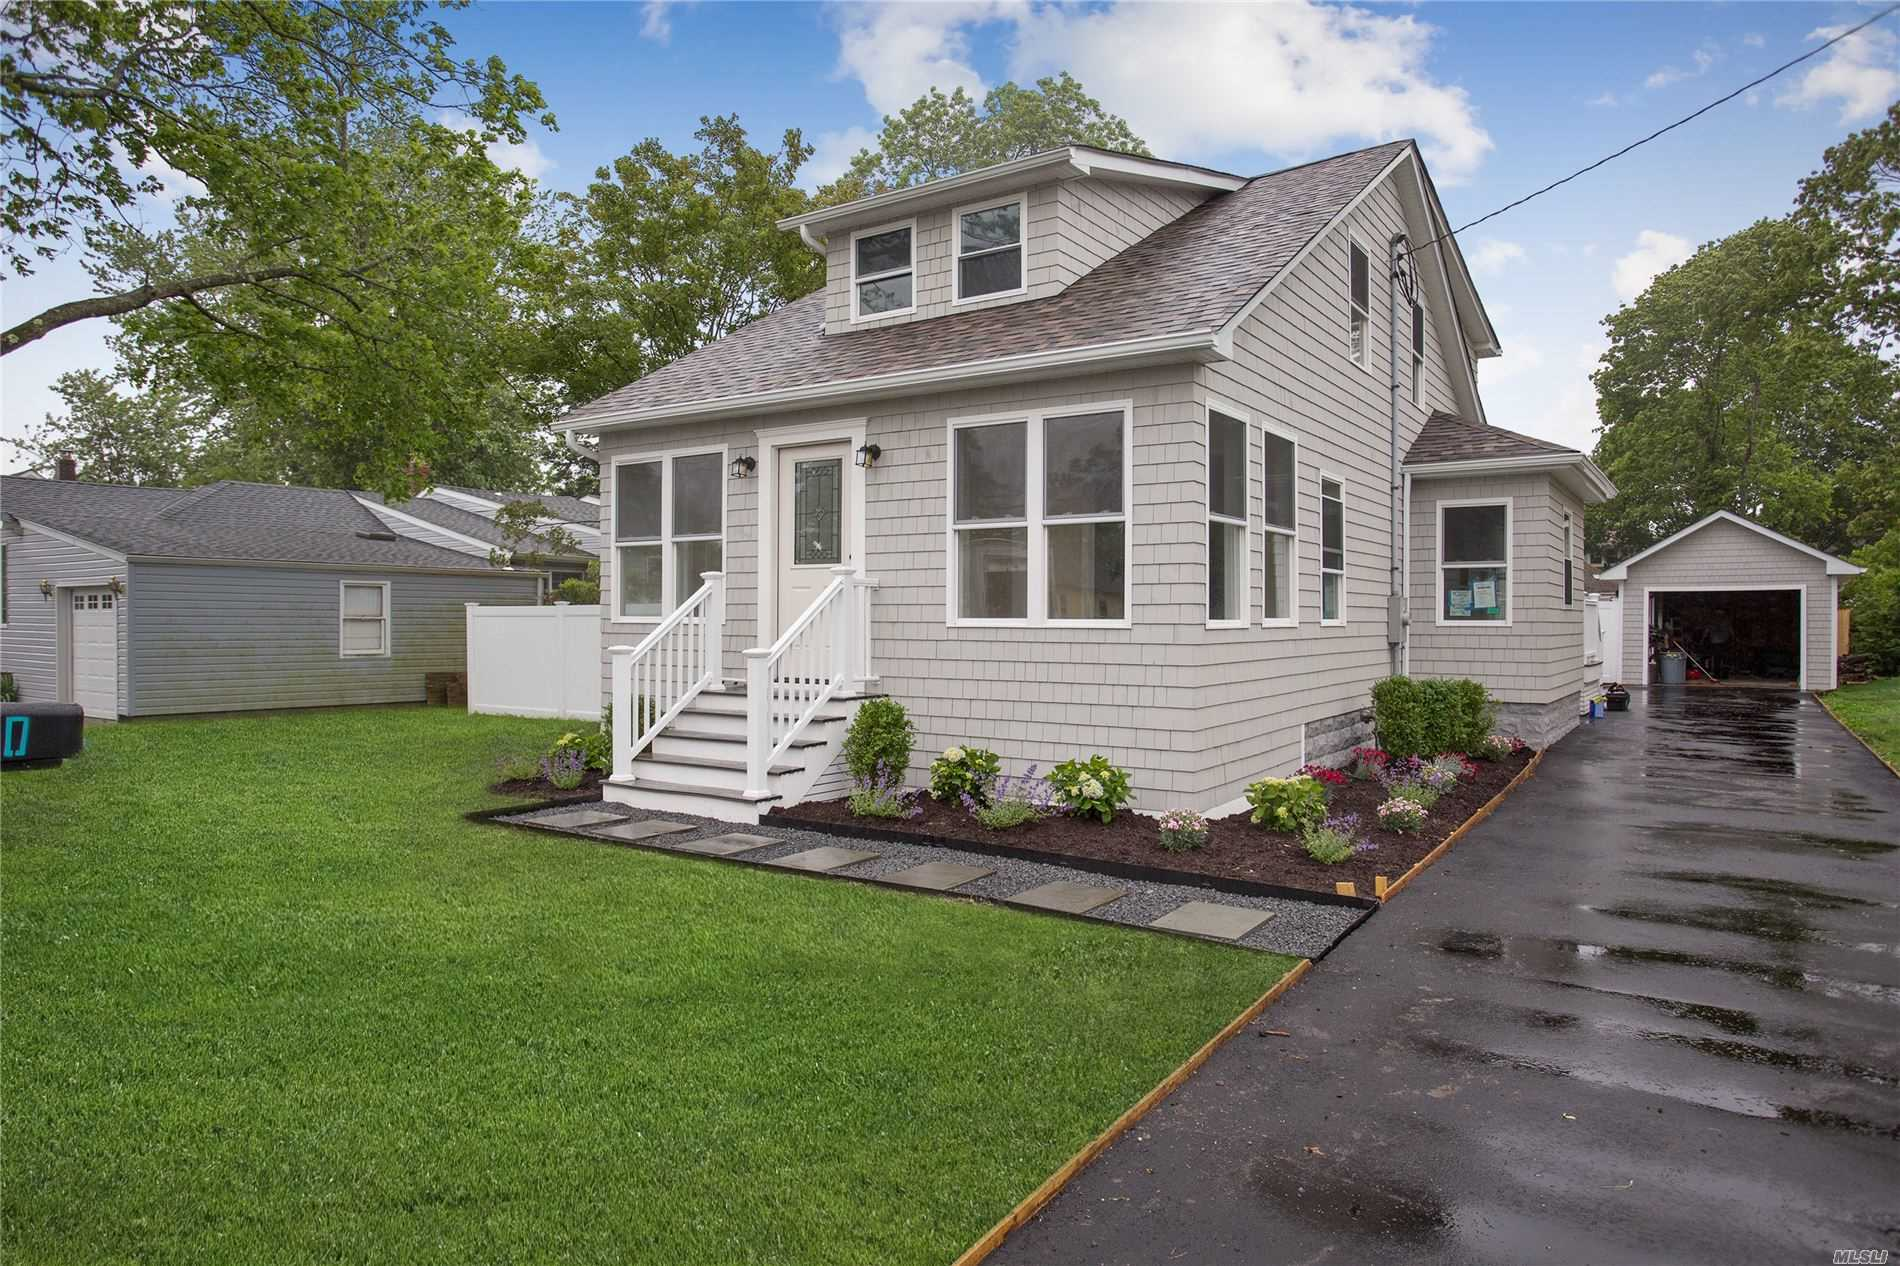 20 Lee Ave - Patchogue, New York